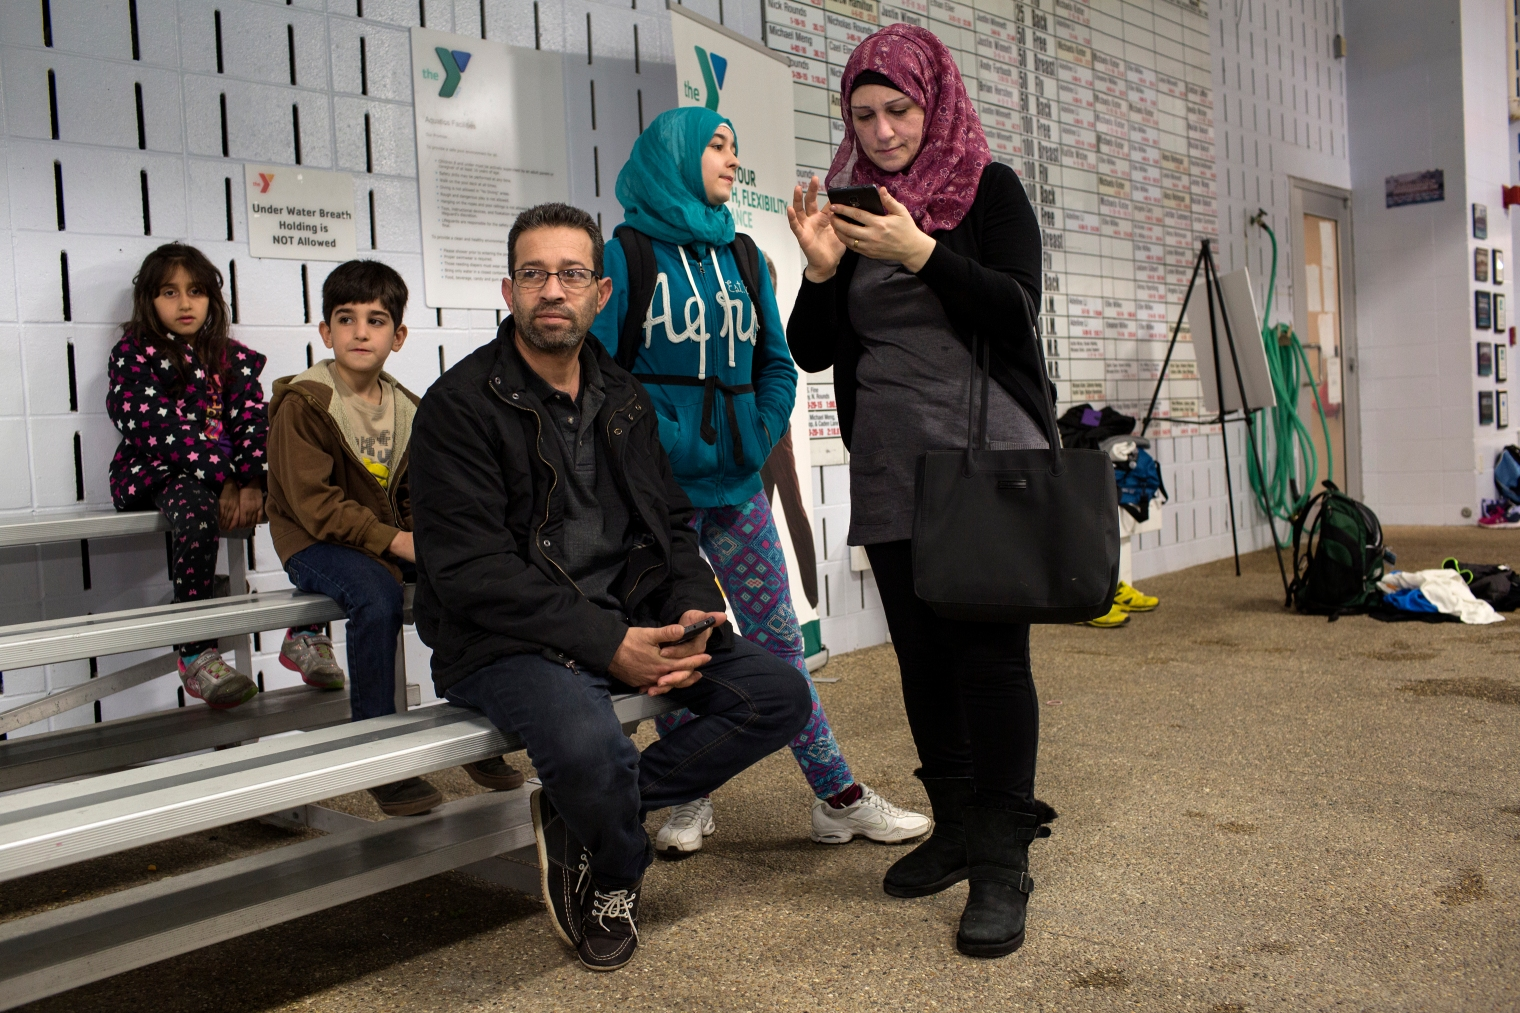 Abdul Fattah Tameem and his wife, Ghazweh Aljabooli, watch there two oldest sons, Nazeer and Haidar, swim at a local pool.